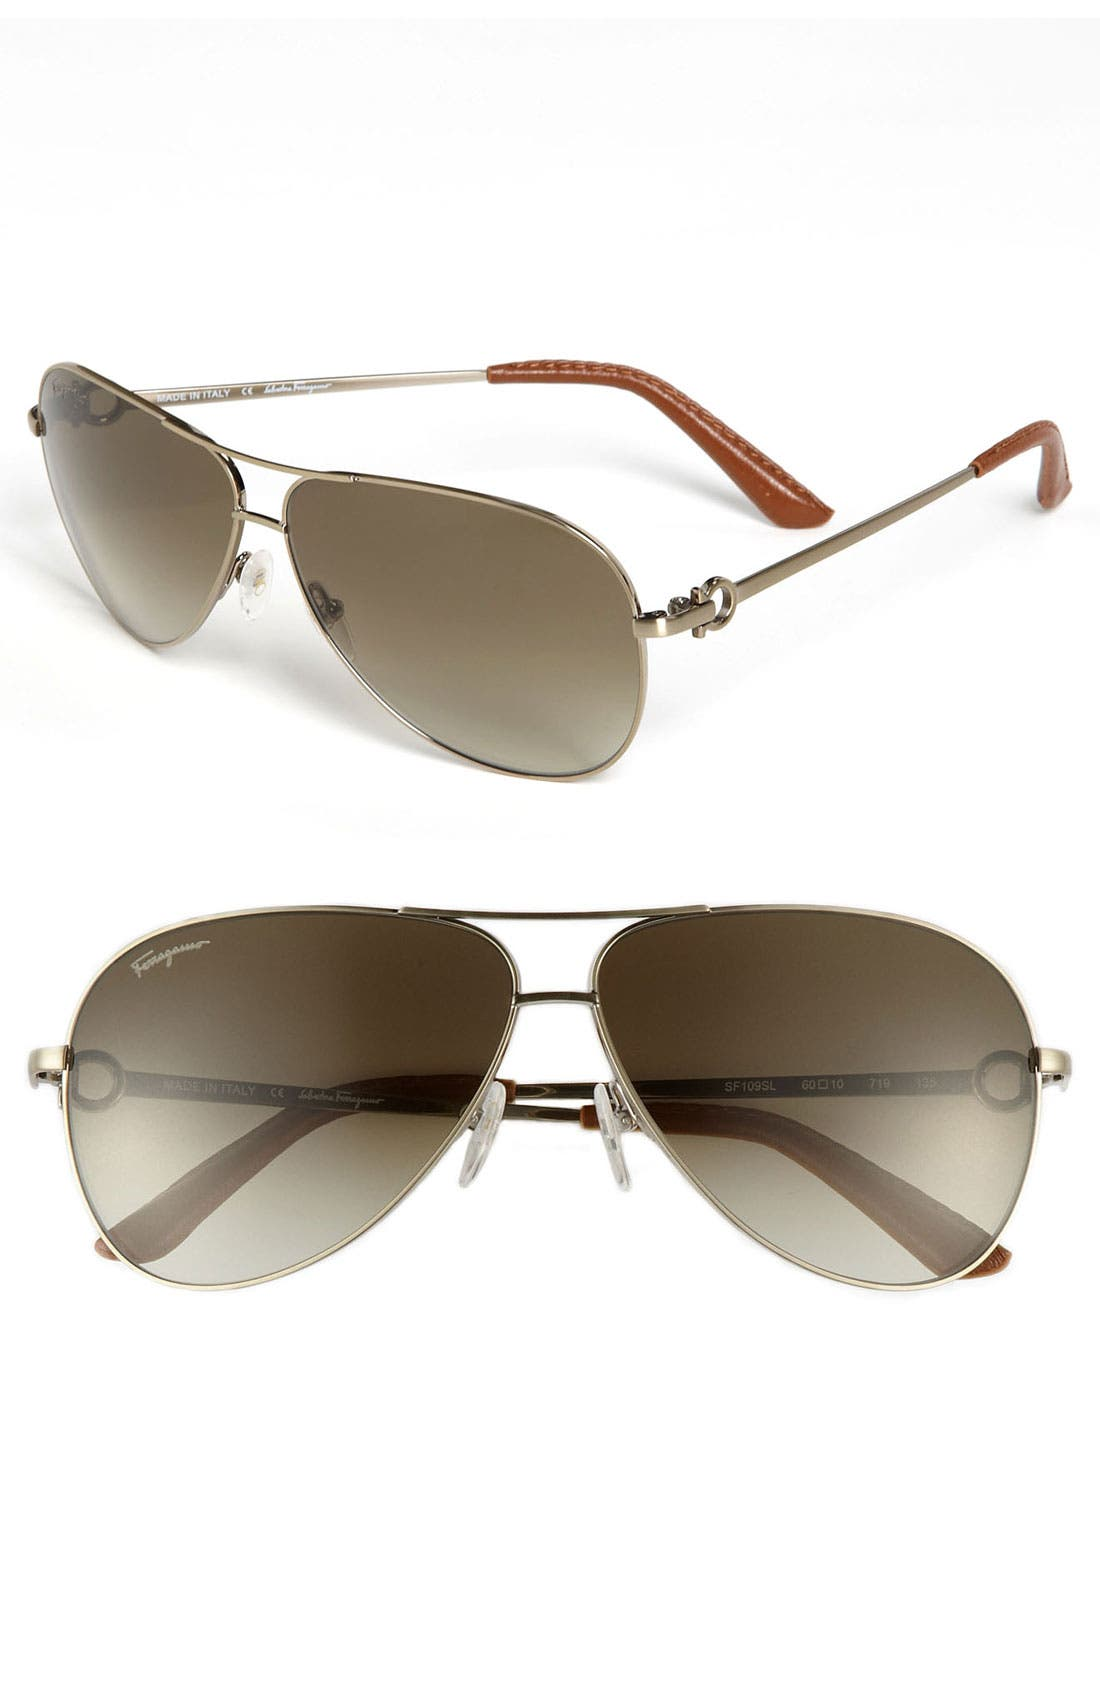 Main Image - Salvatore Ferragamo 60mm Metal Aviator Sunglasses